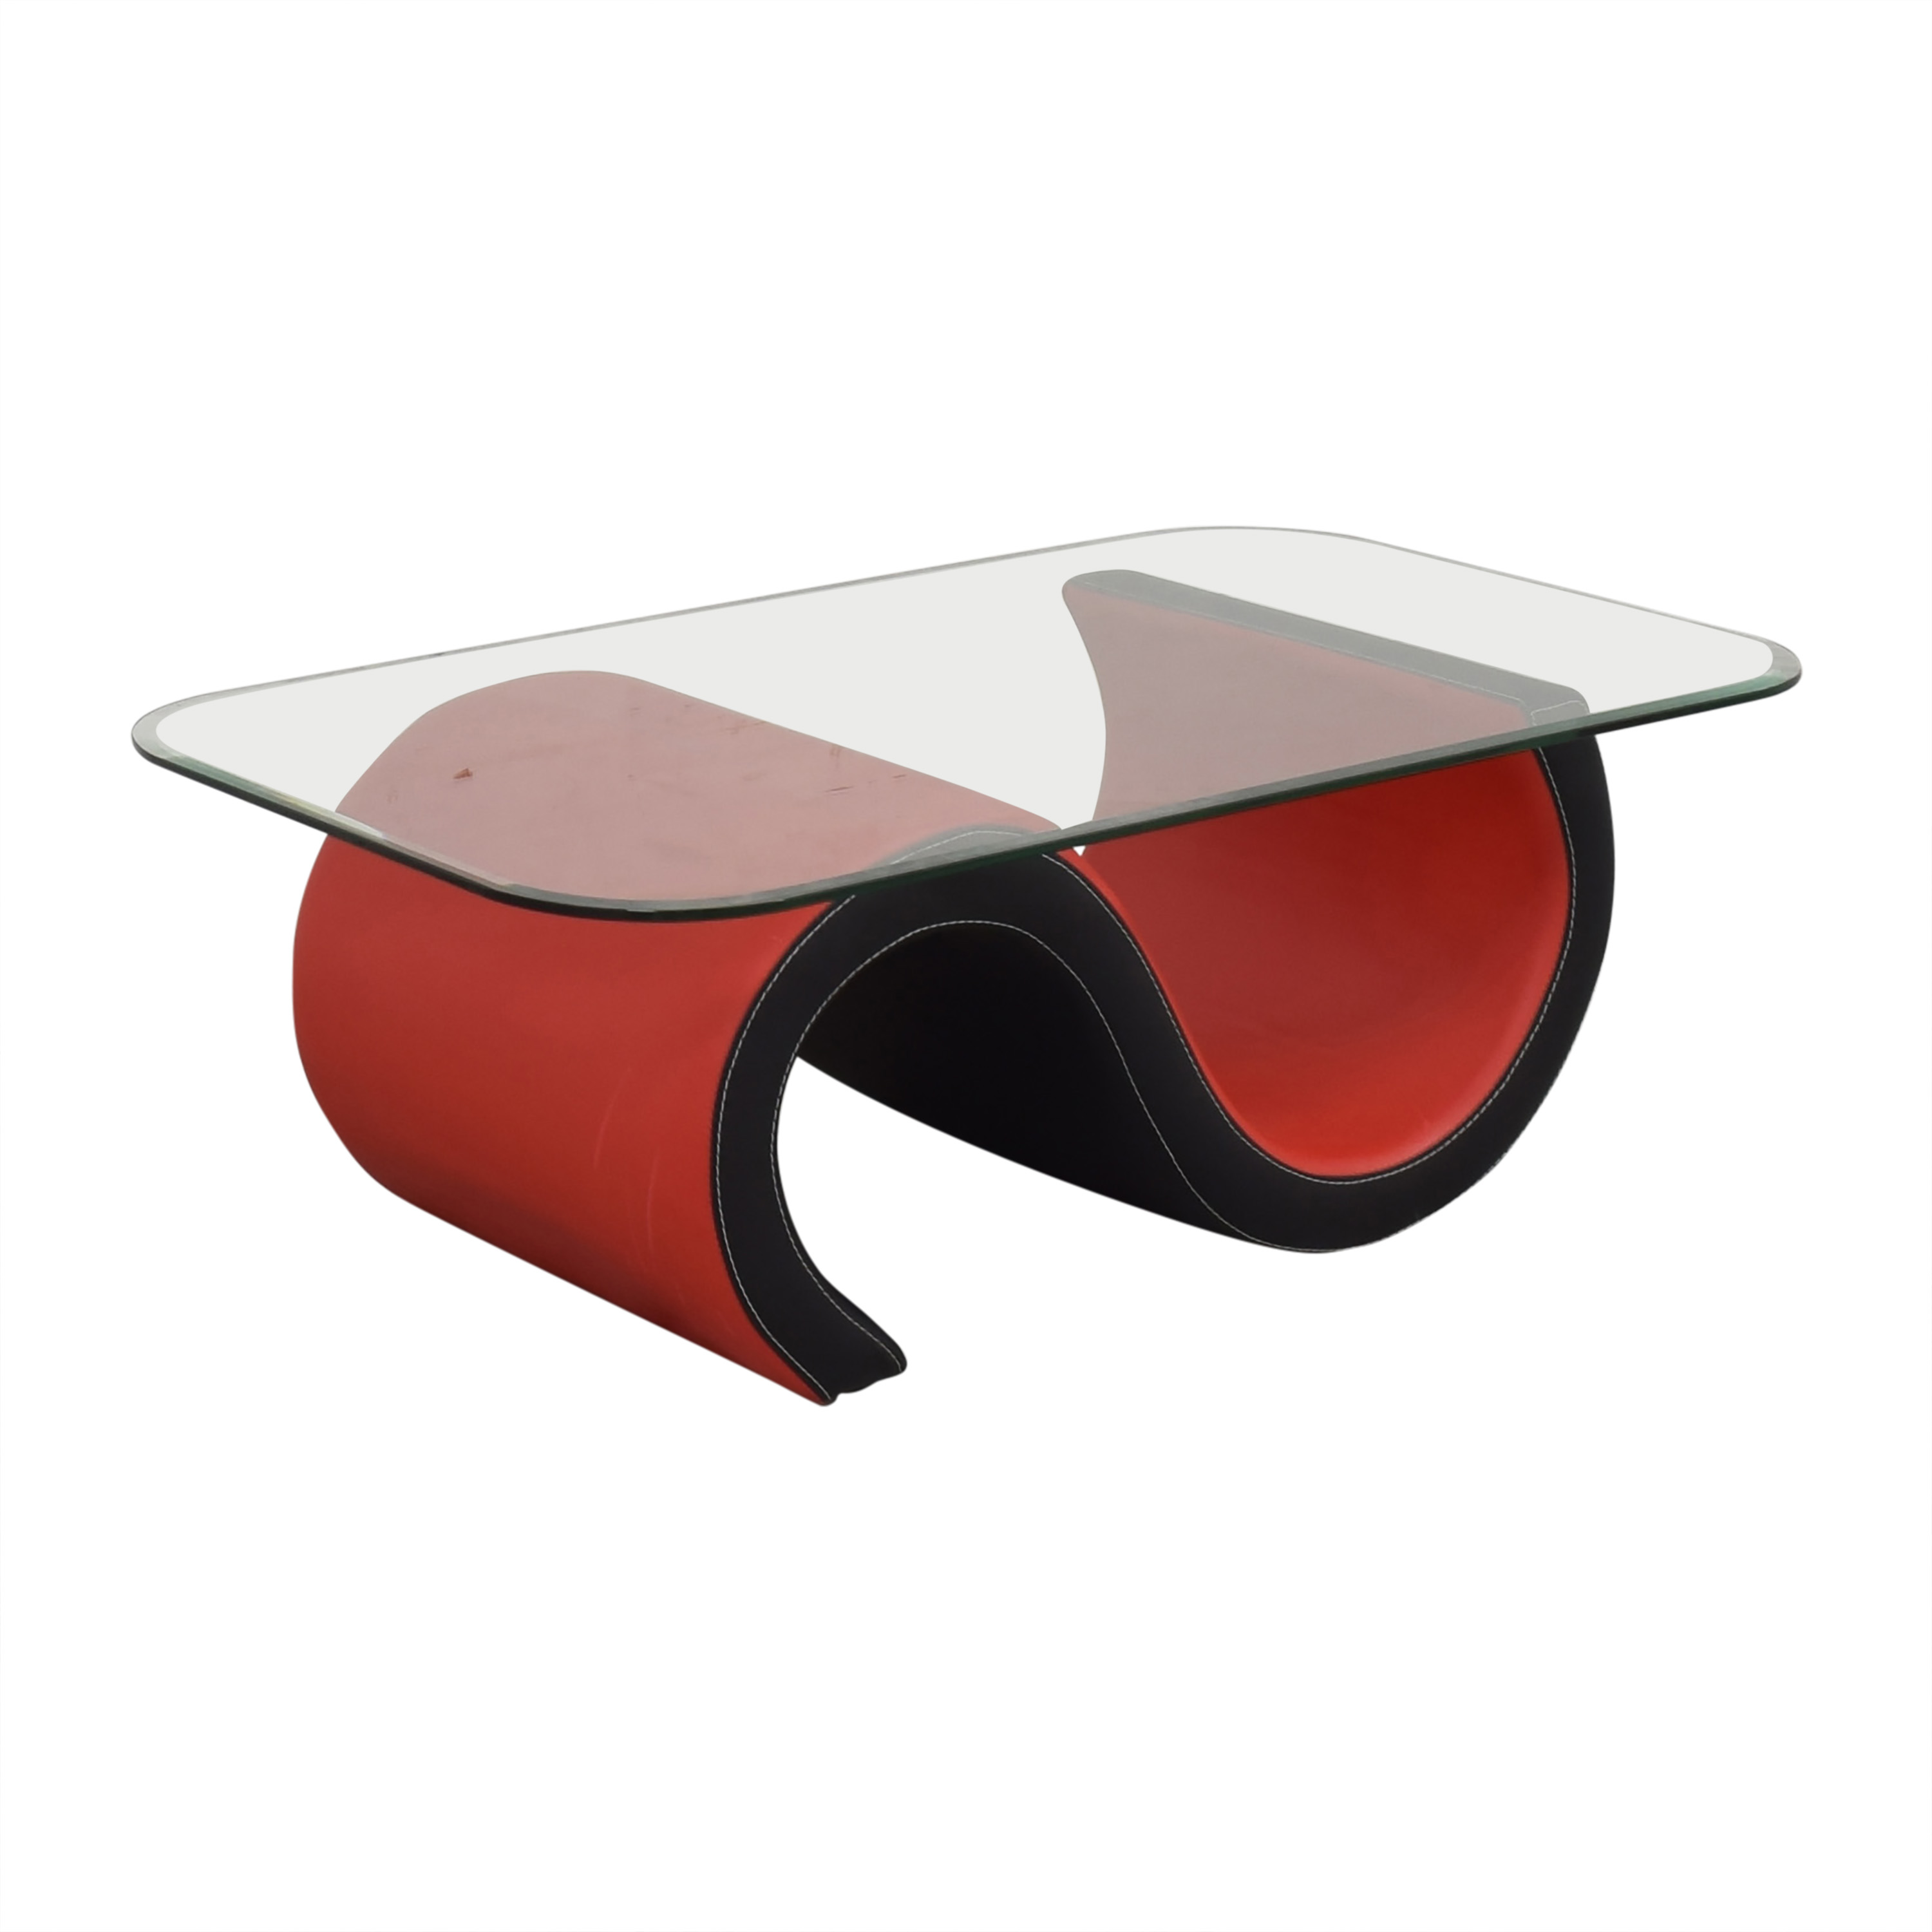 Macy's Abstract Coffee Table with Transparent Surface / Tables